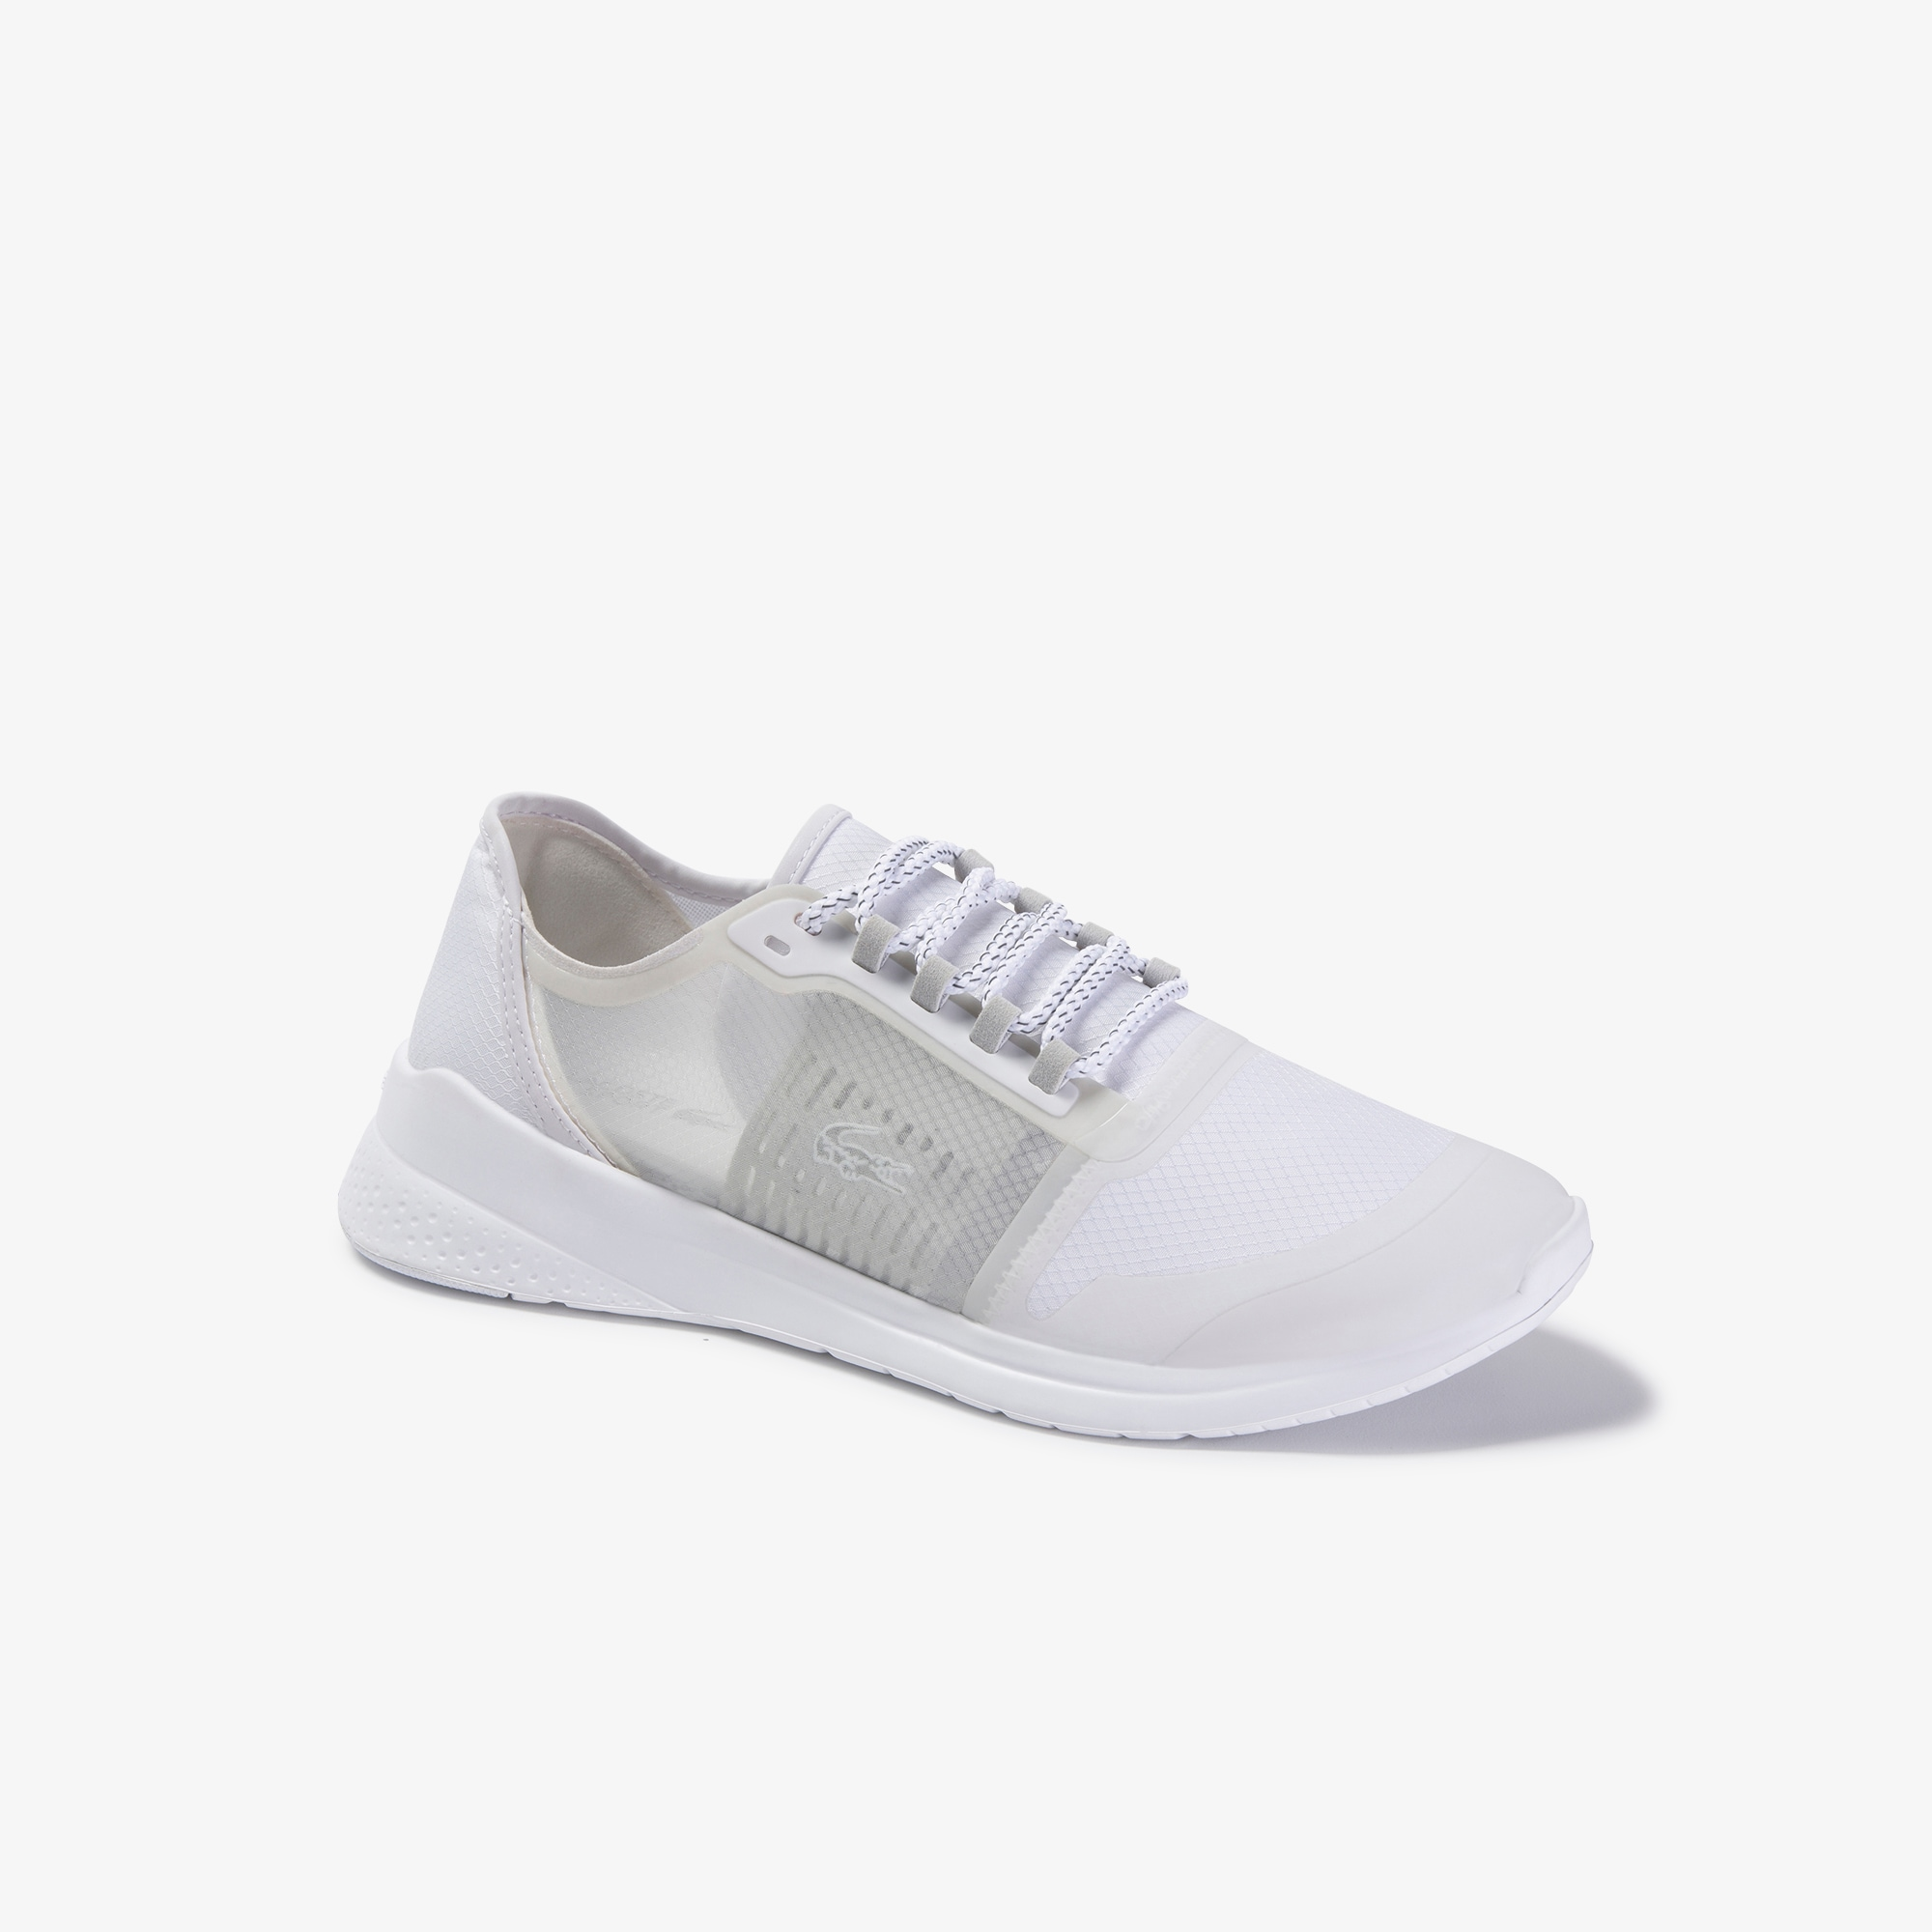 Men's LT Fit Textile and Synthetic Trainers